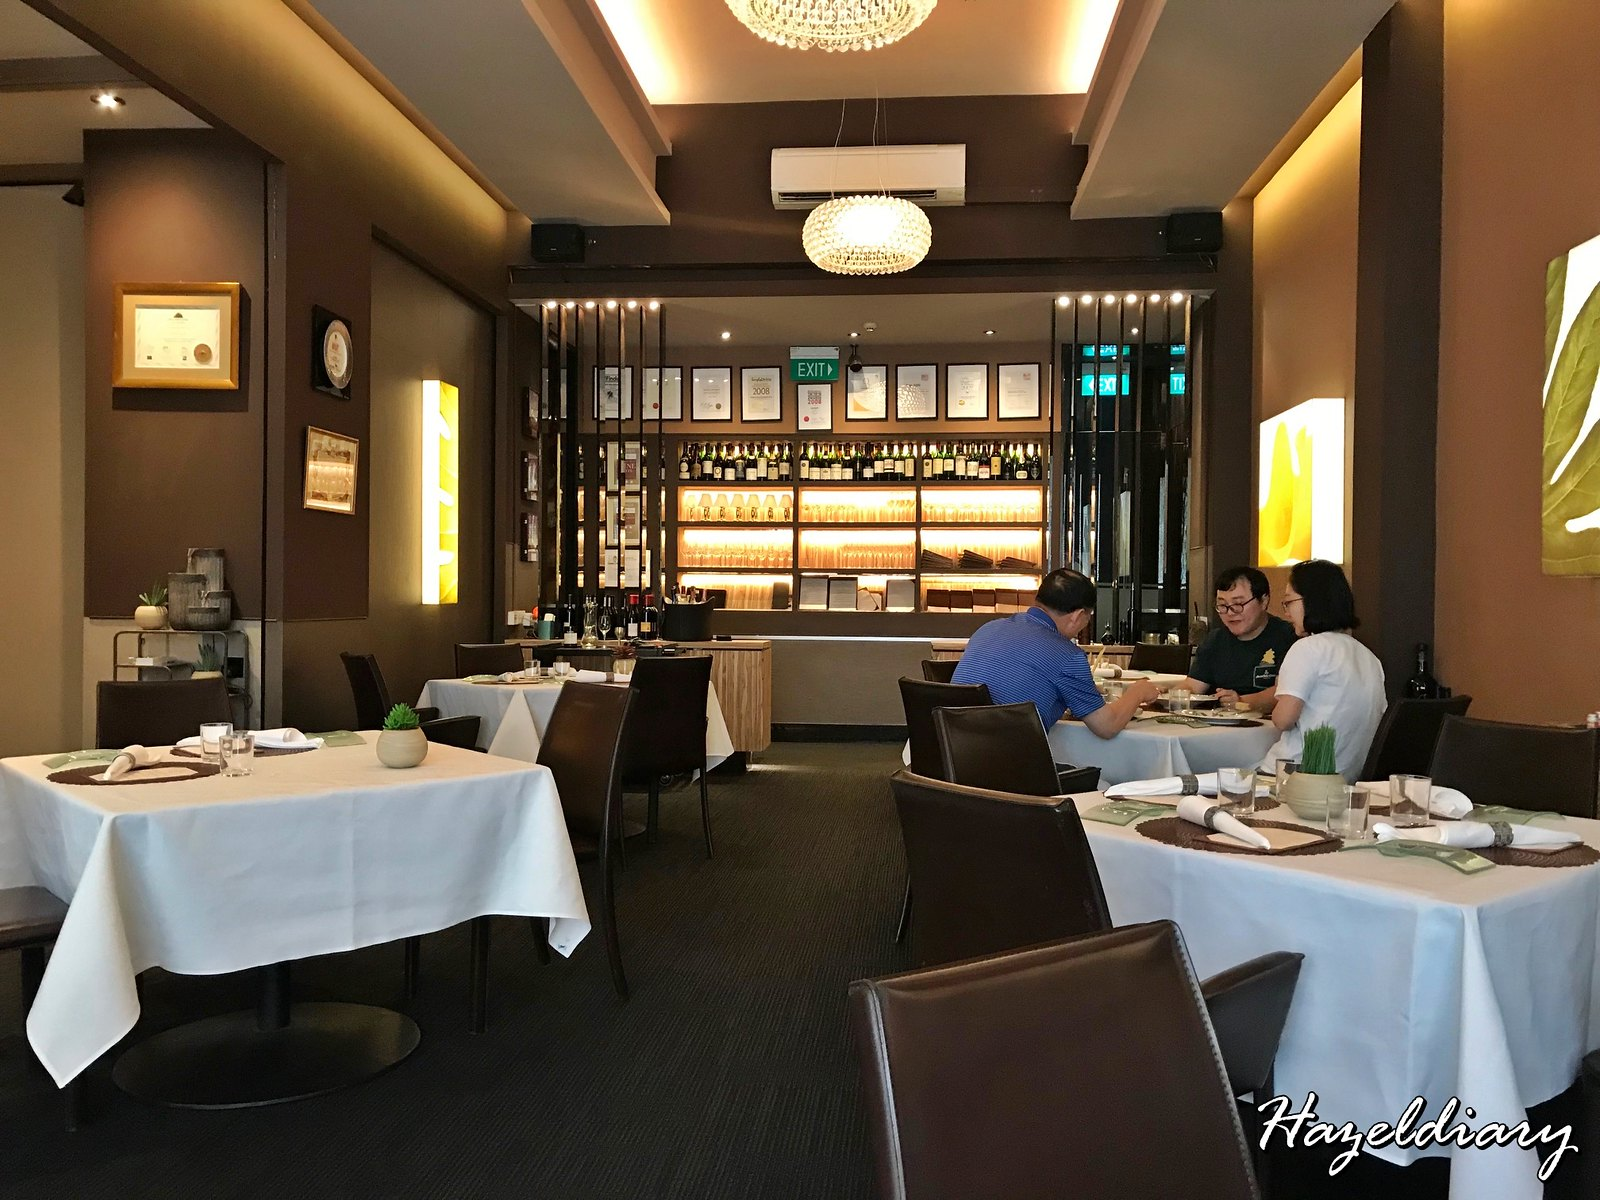 [SG EATS] My Set Lunch At Gunther's Modern French Cuisine Restaurant